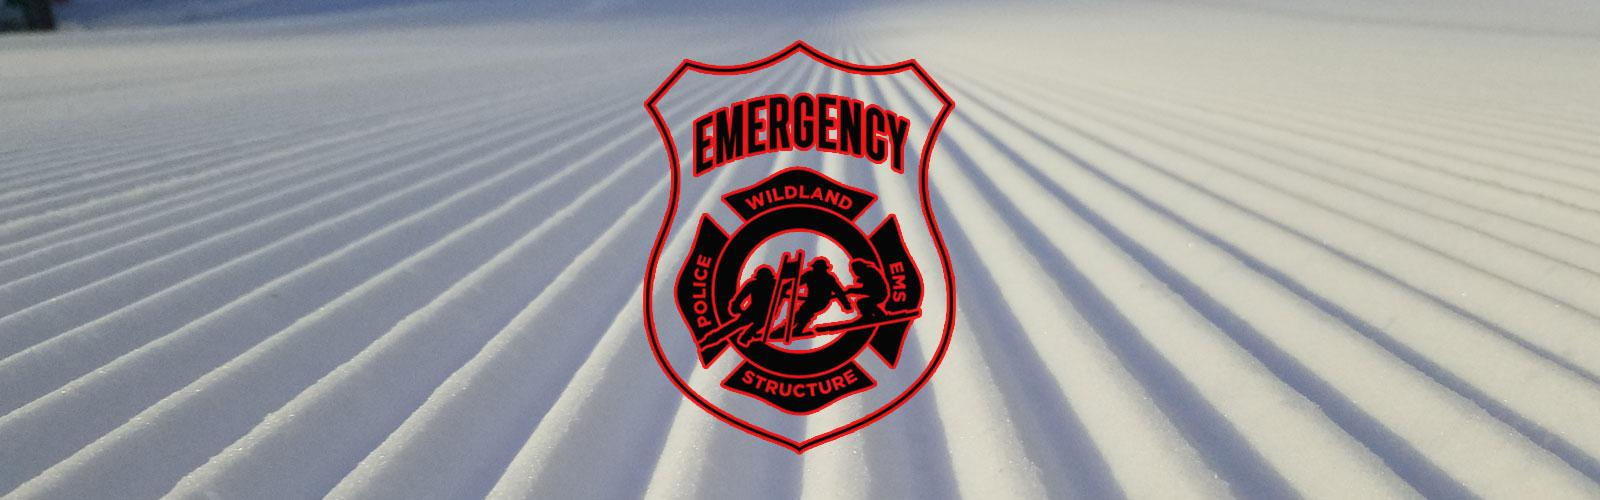 Emergency Personnel Badge on top of a picture of a freshly groomed run.